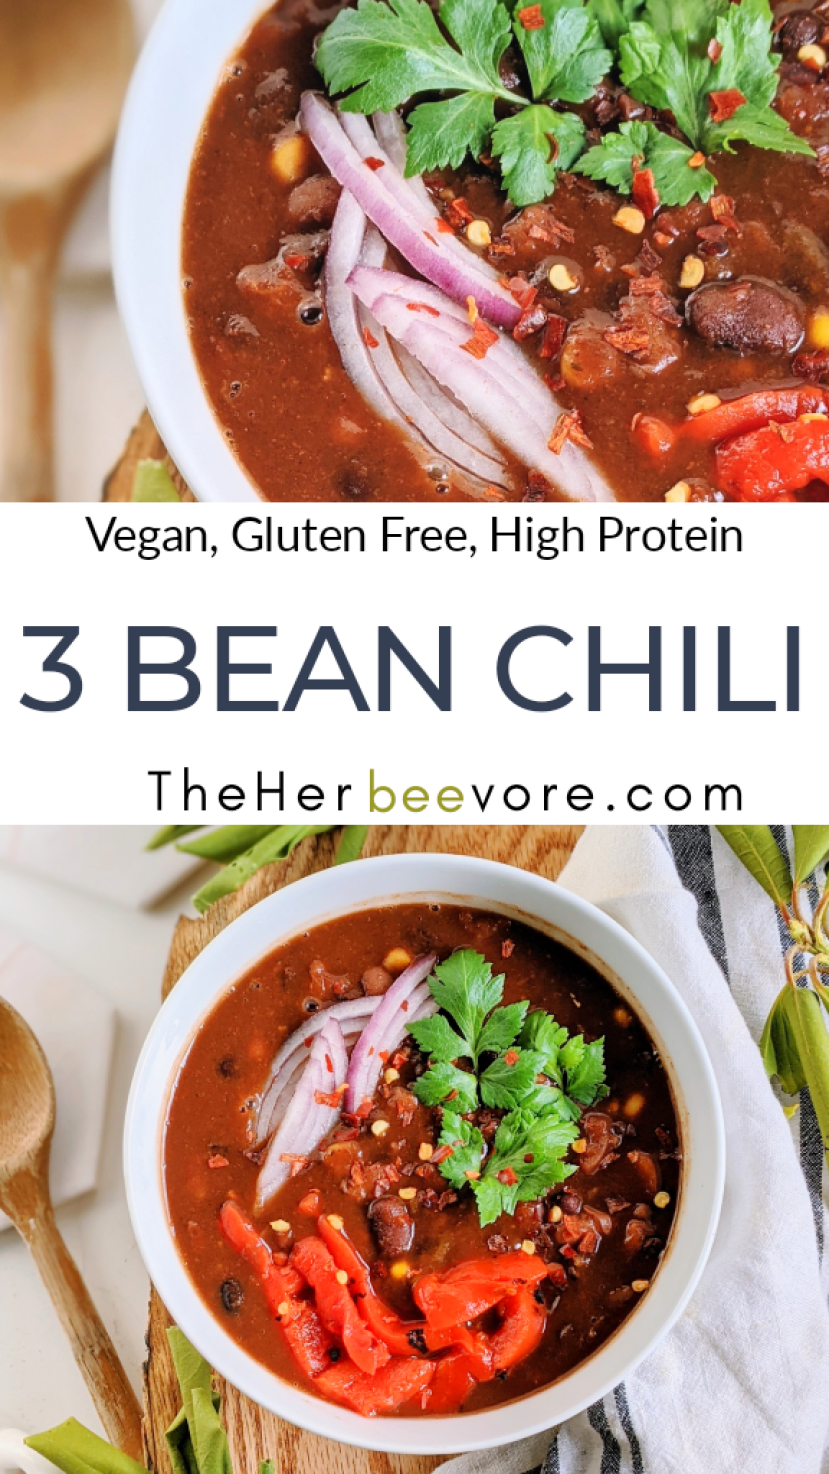 vegan three bean chili recipe slow cooker instant pot pressure cooker gluten free stove top canned beans chili dried beans